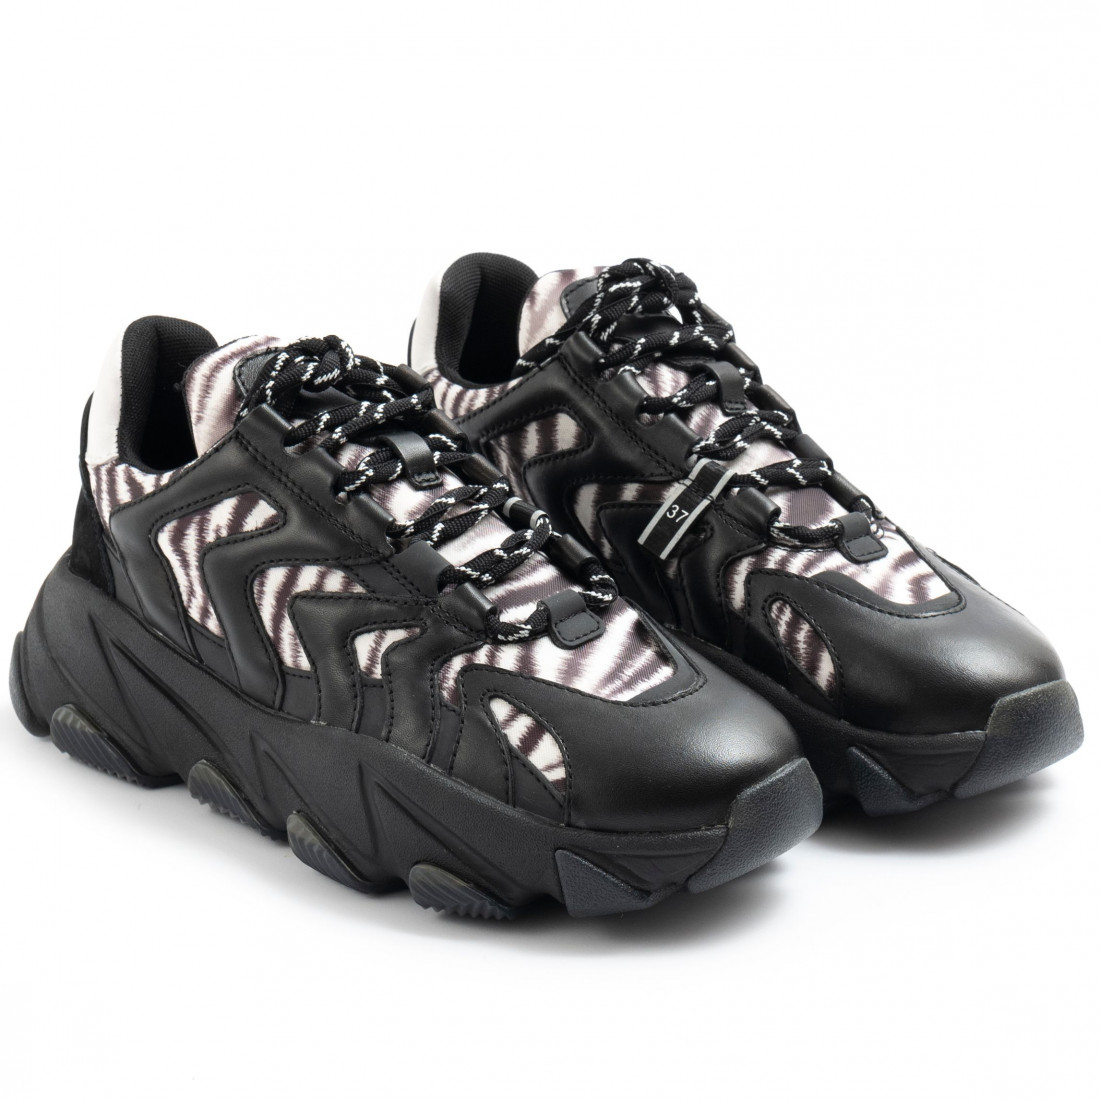 sneakers woman ash extreme02 7622